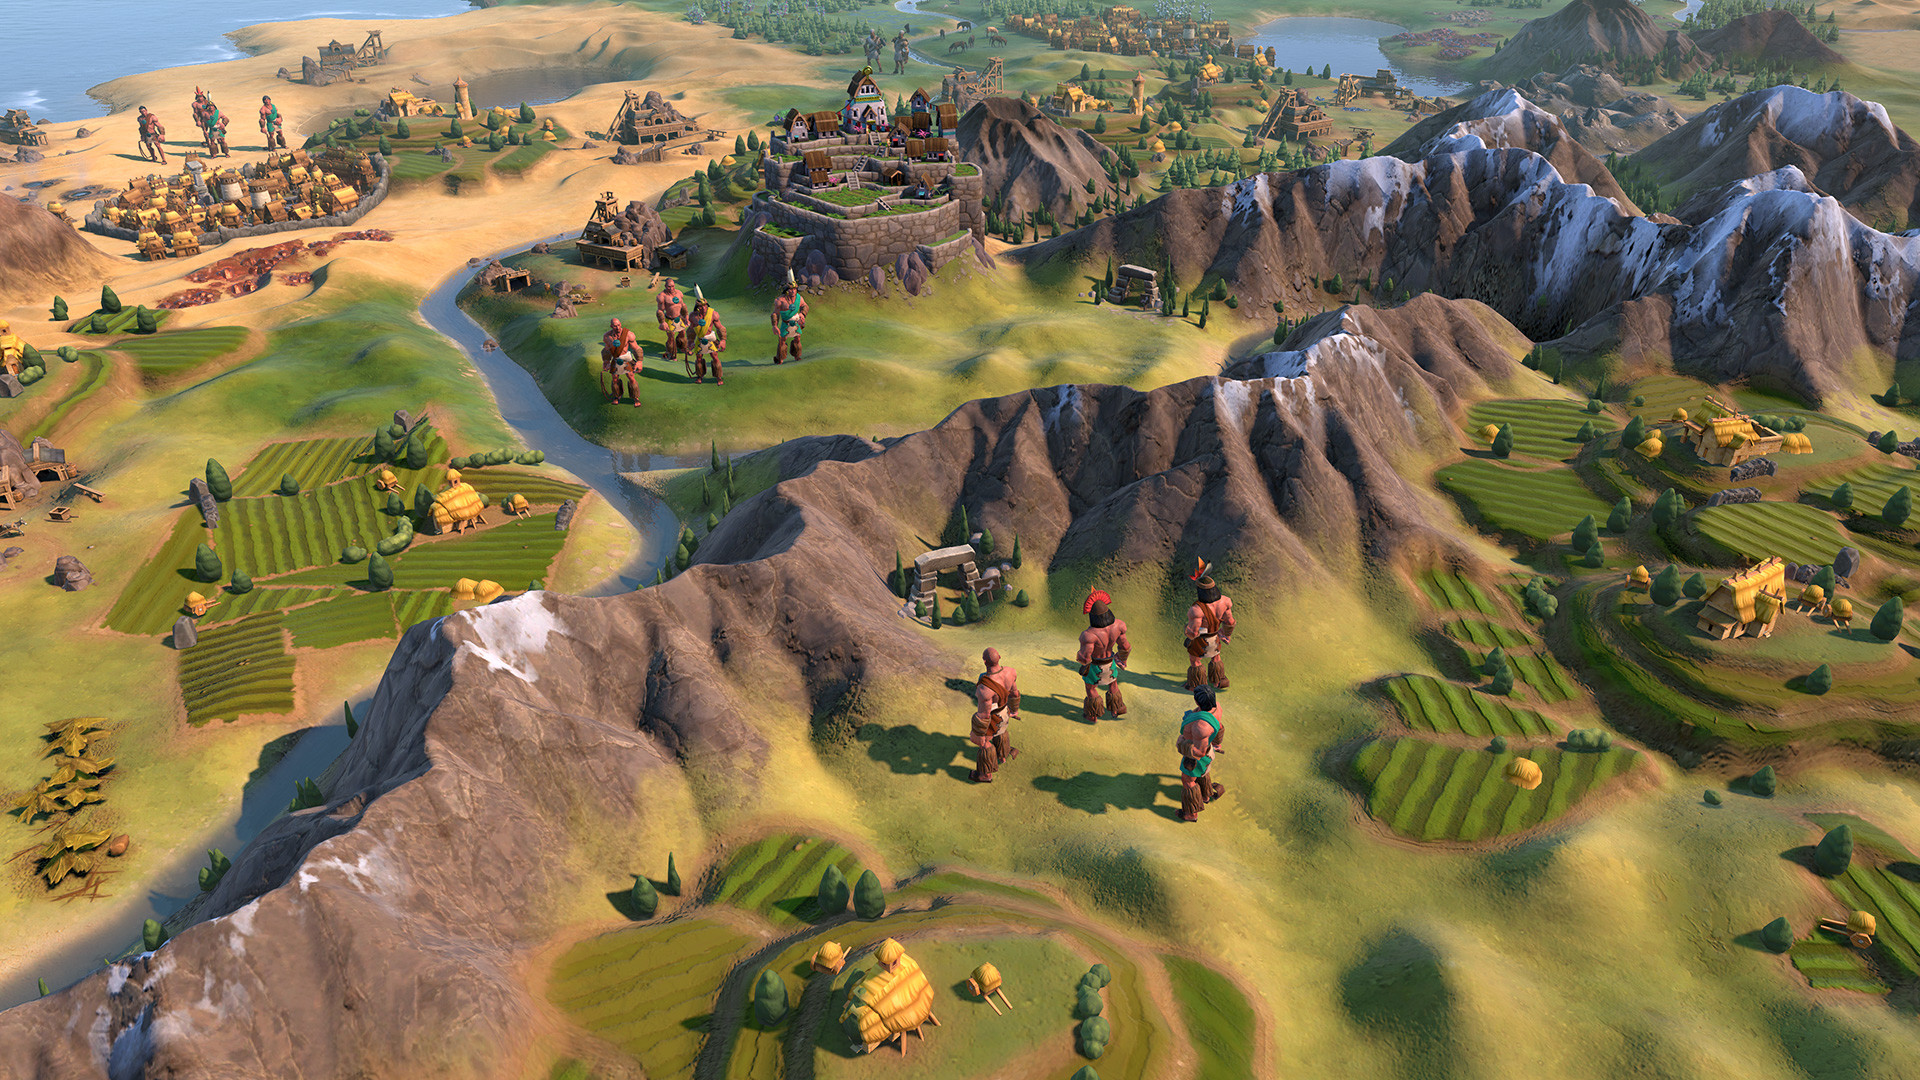 Civilization VI: Gathering Storm also brings the Inca with a strong